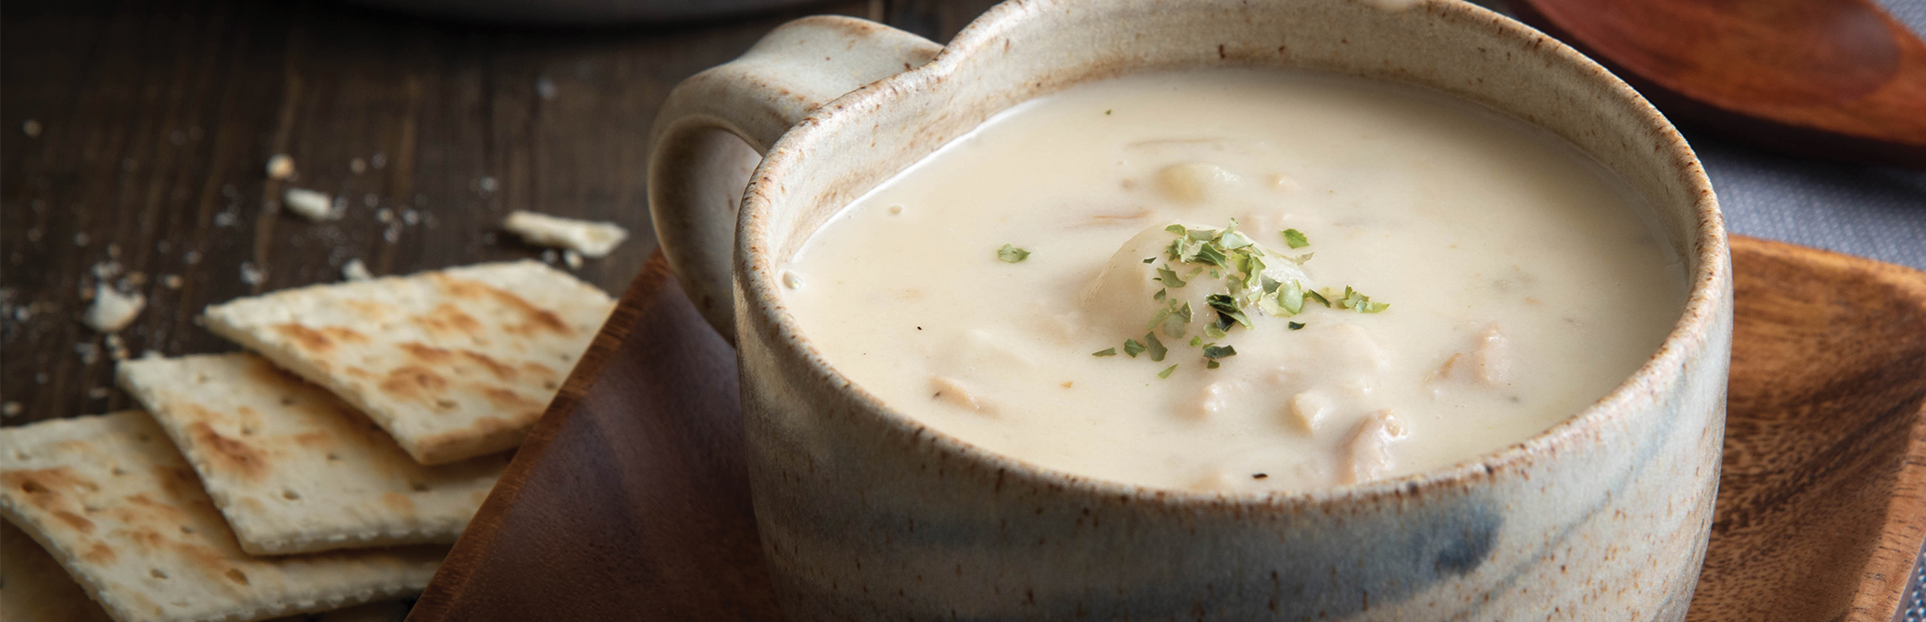 an image of seafood chowder